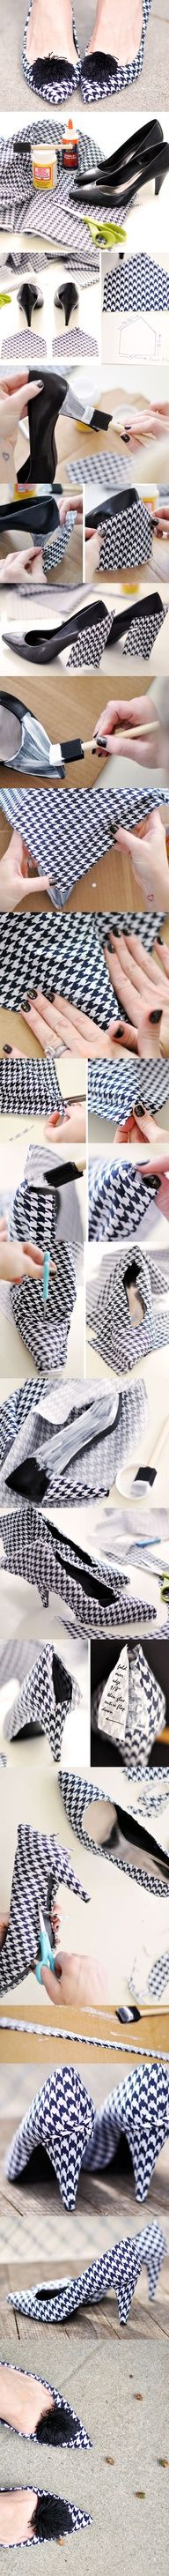 ~ DIY How Cool Is That, You Can Use All Sorts Of Cool Fabrics & Colors!!! ~